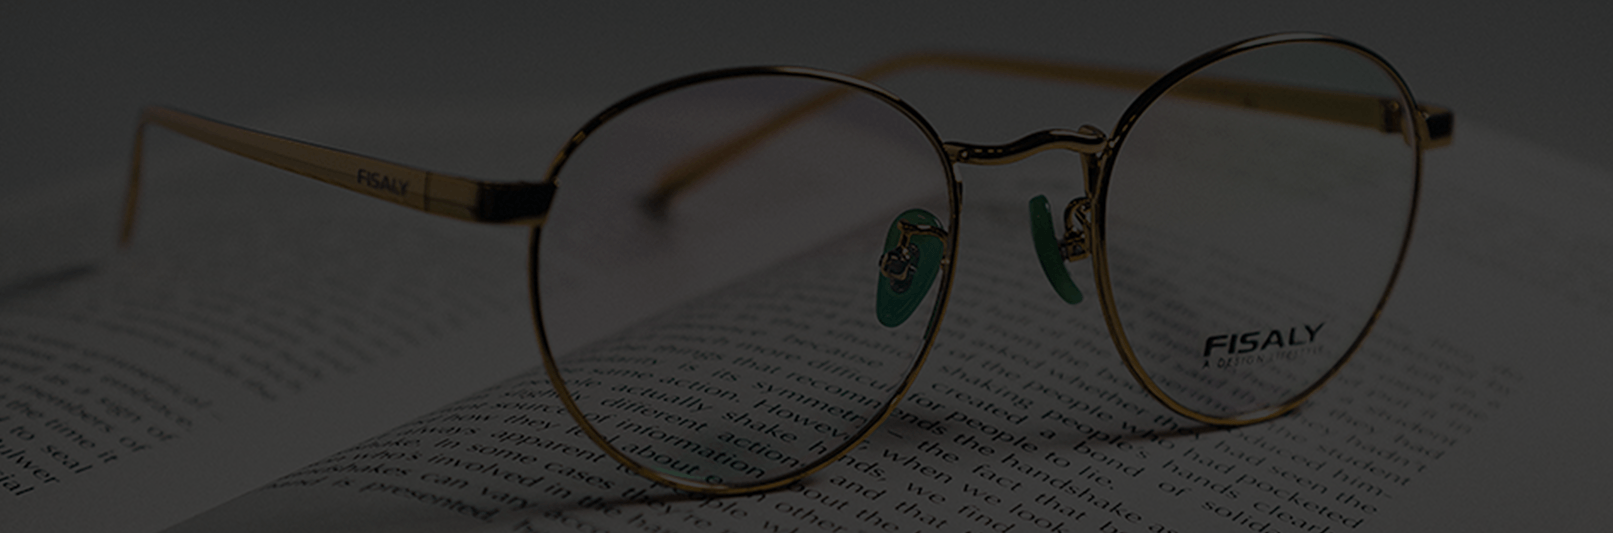 Prescription eyeglass frames resting on top of an open book